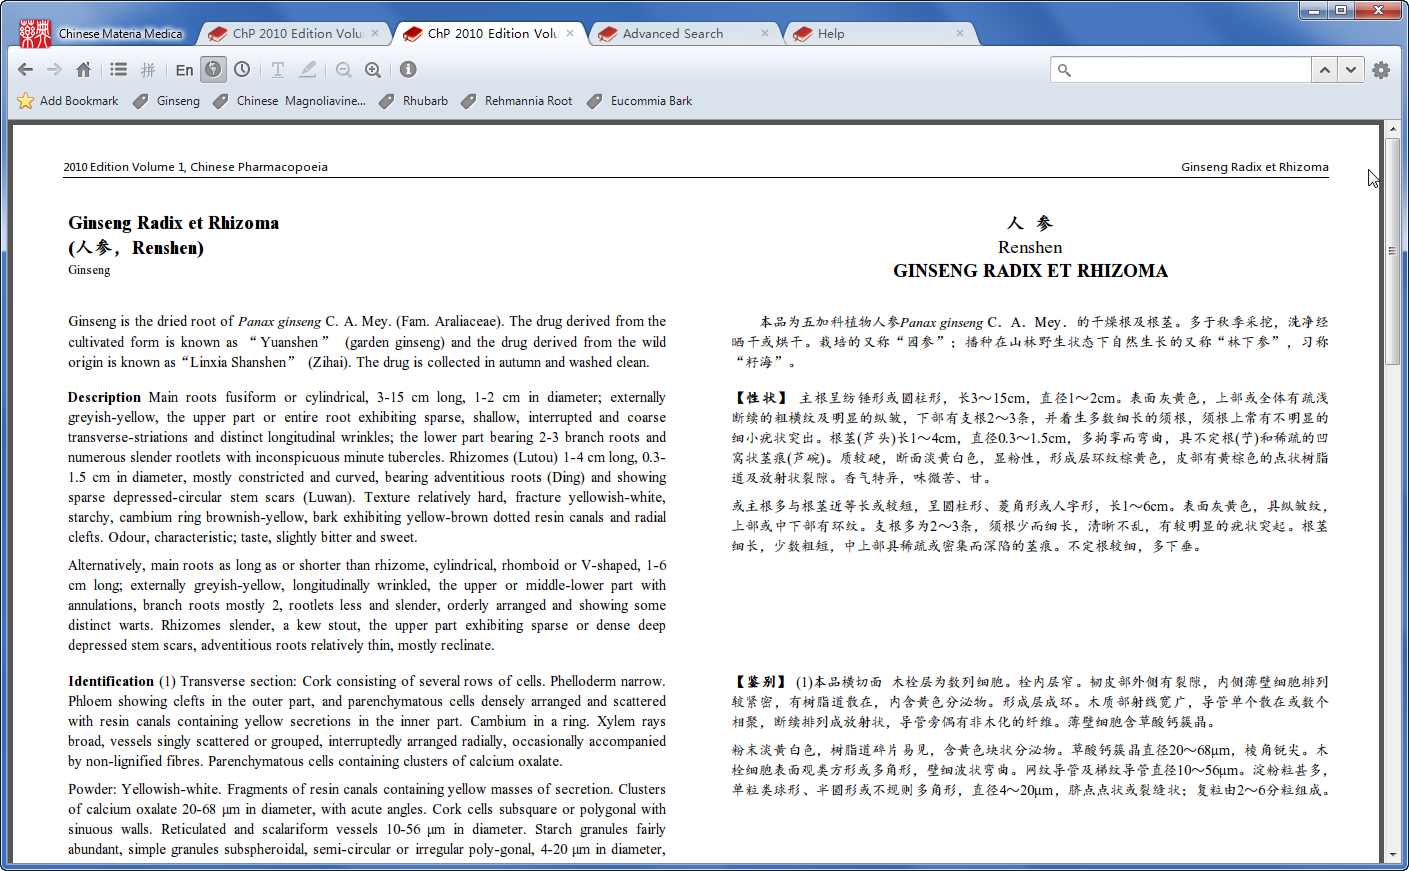 Digitized Standards for Chinese Materia Medica - Chemmind Technologies